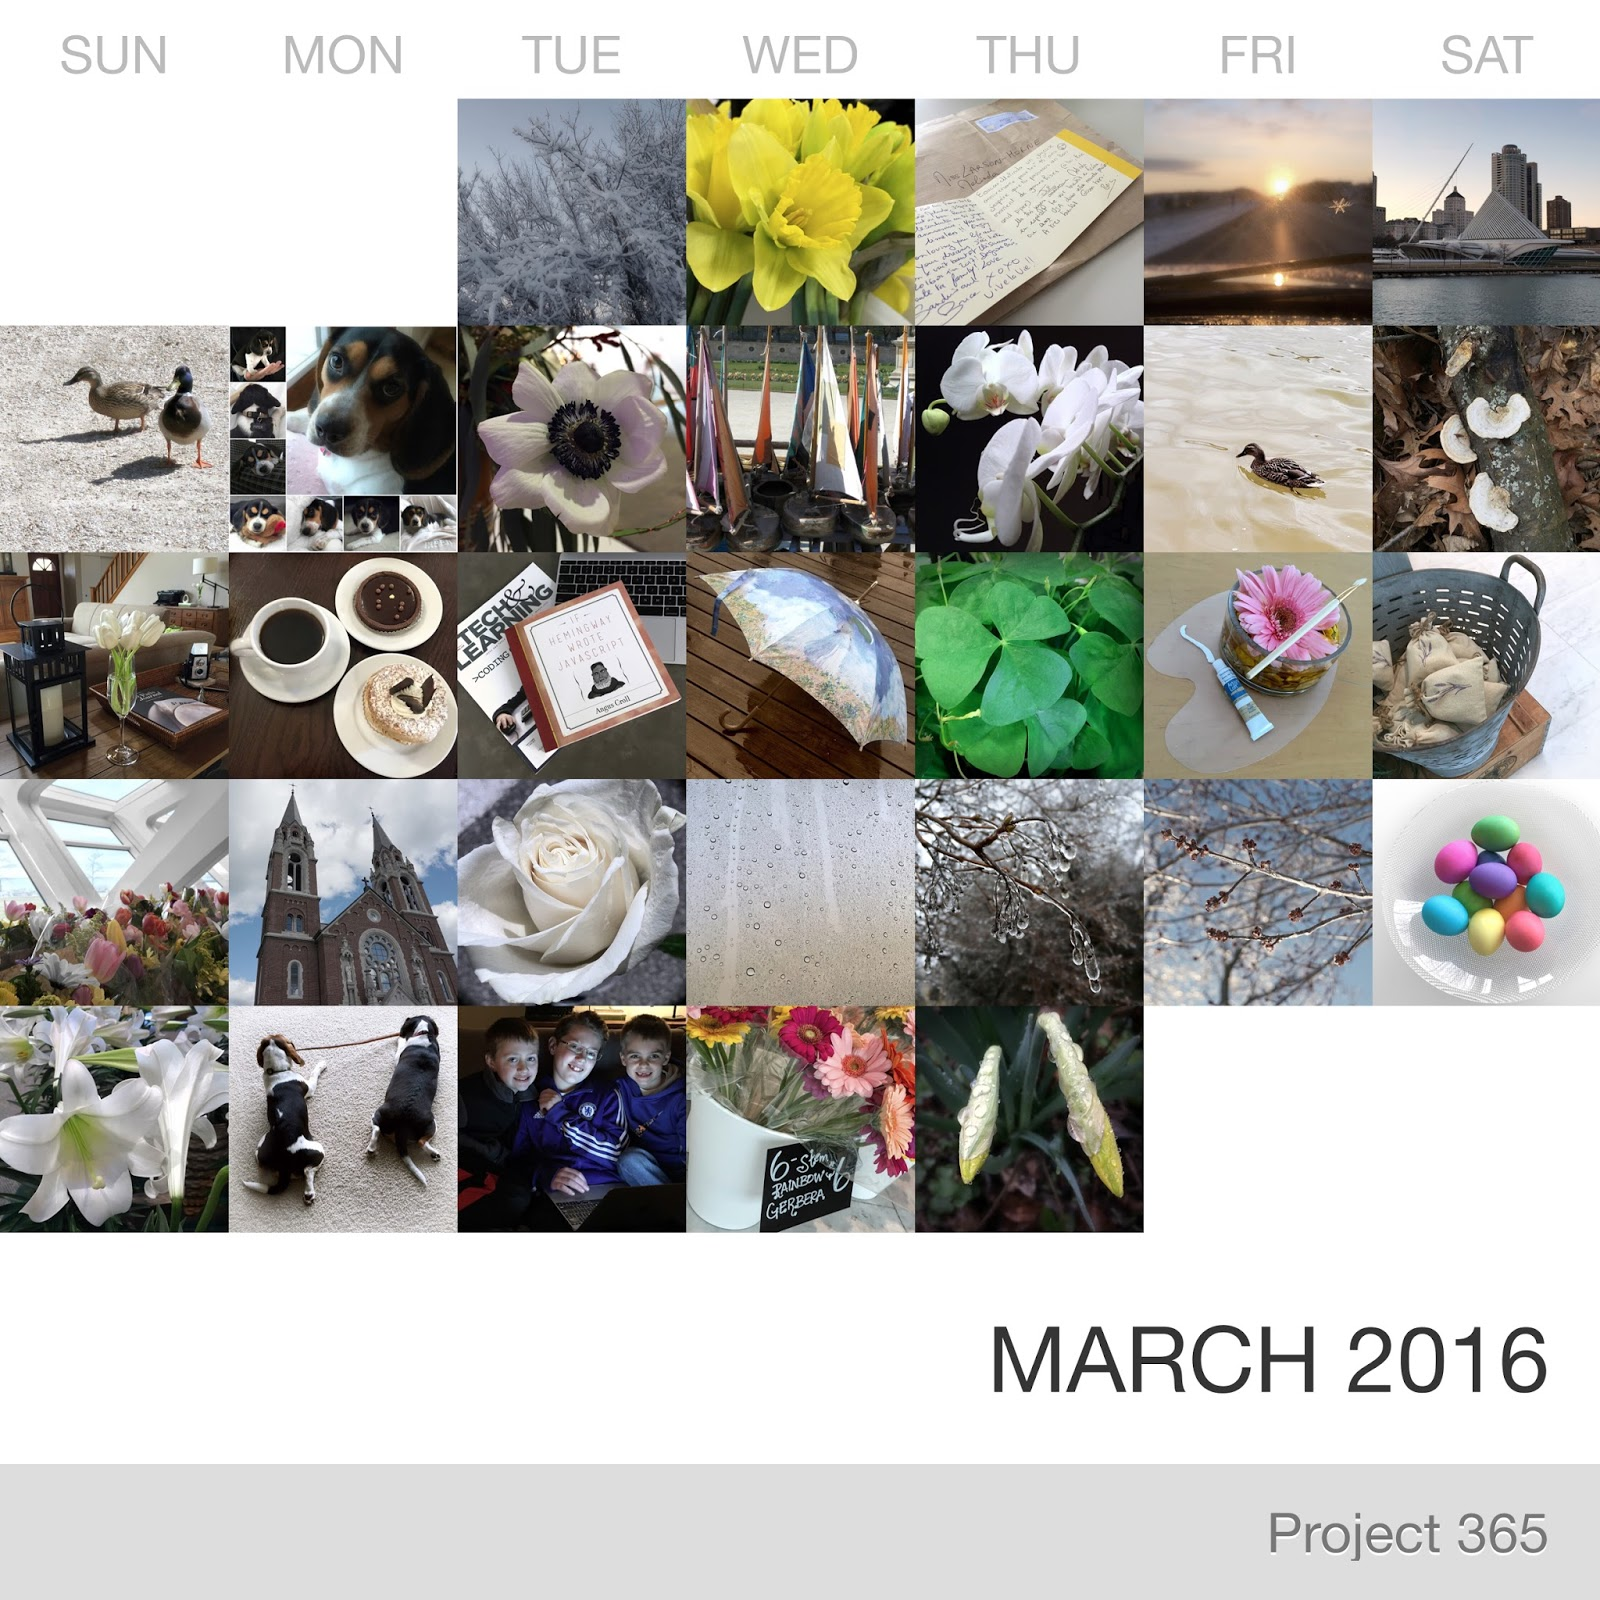 Project 365 _March-2016_Collage.jpg